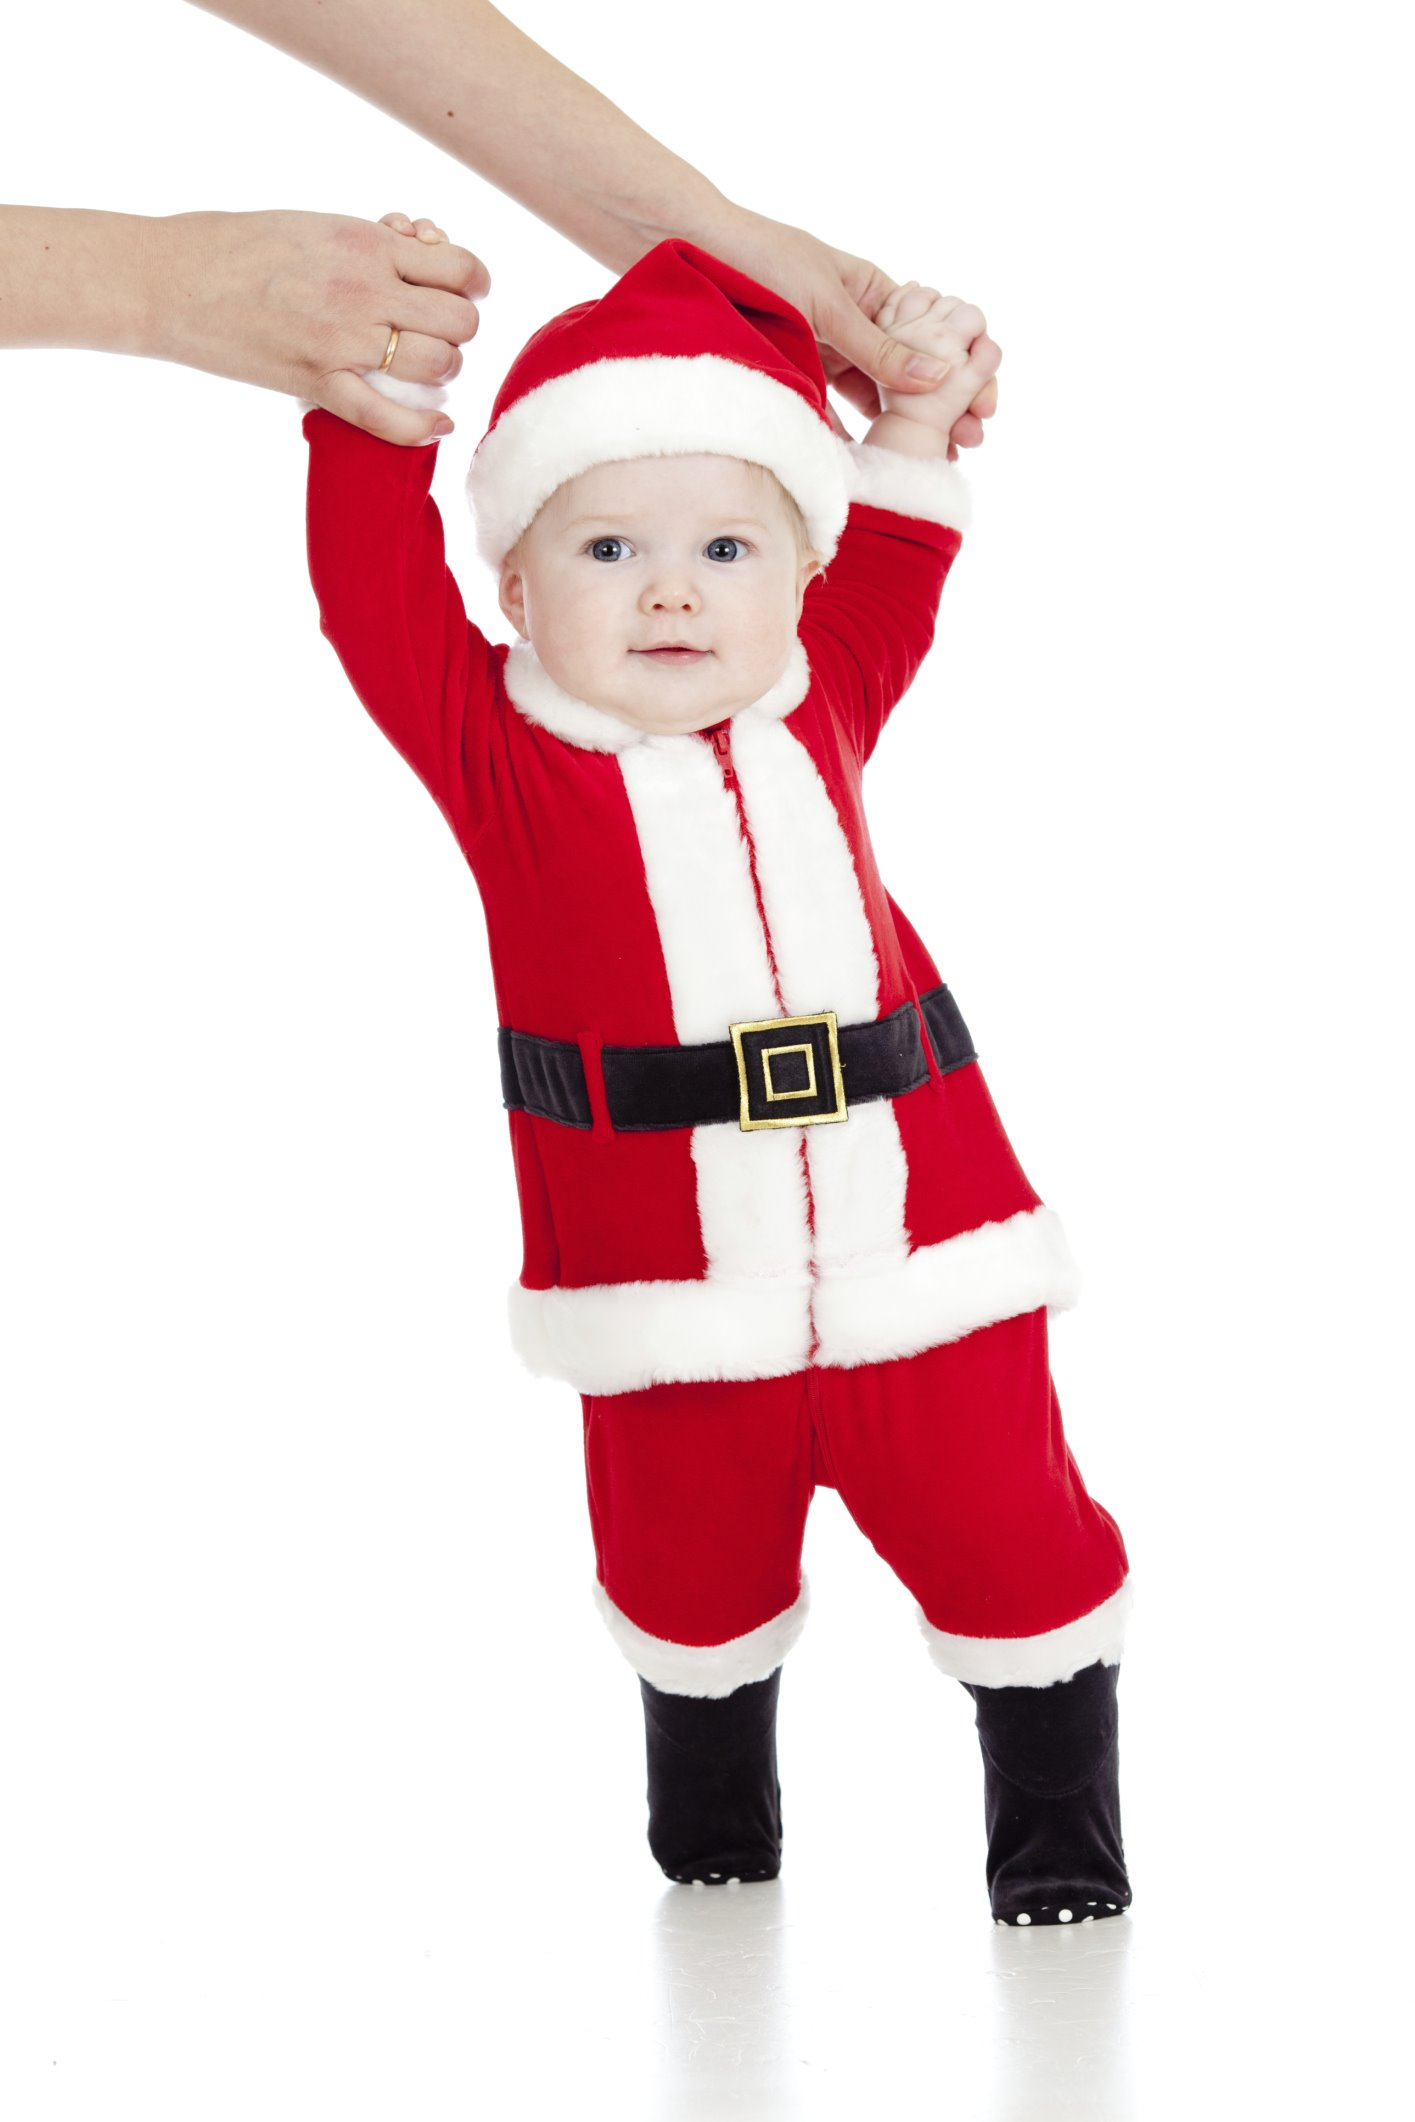 90c769d0dc75 first steps of funny Santa claus baby